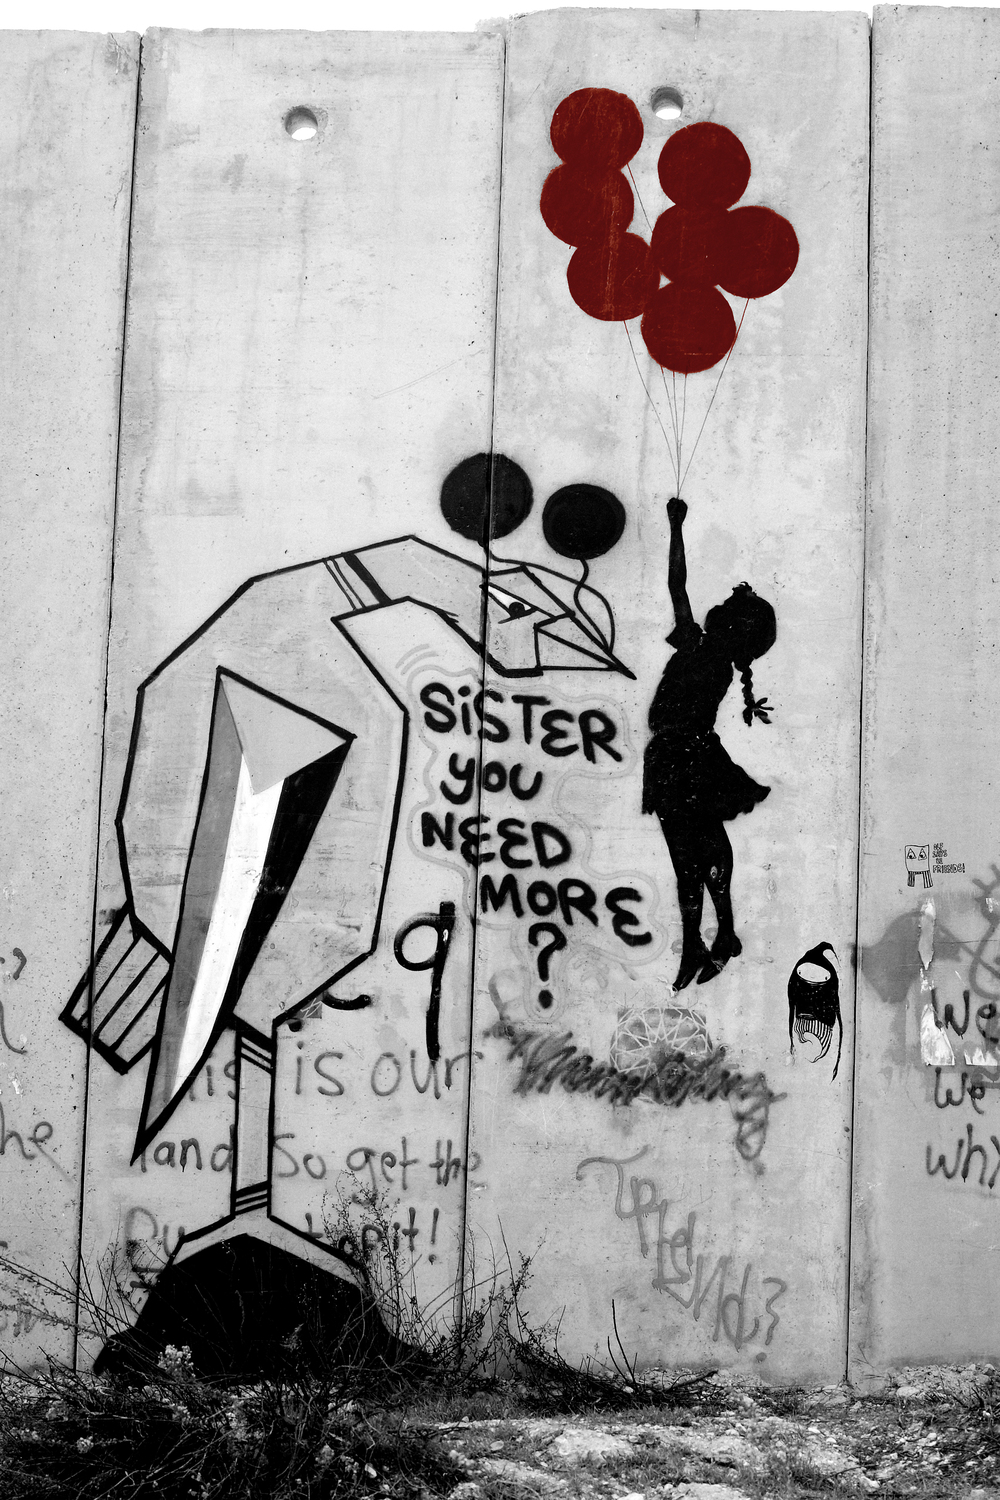 Balloon Girl Banksy Palestine #WithSyria